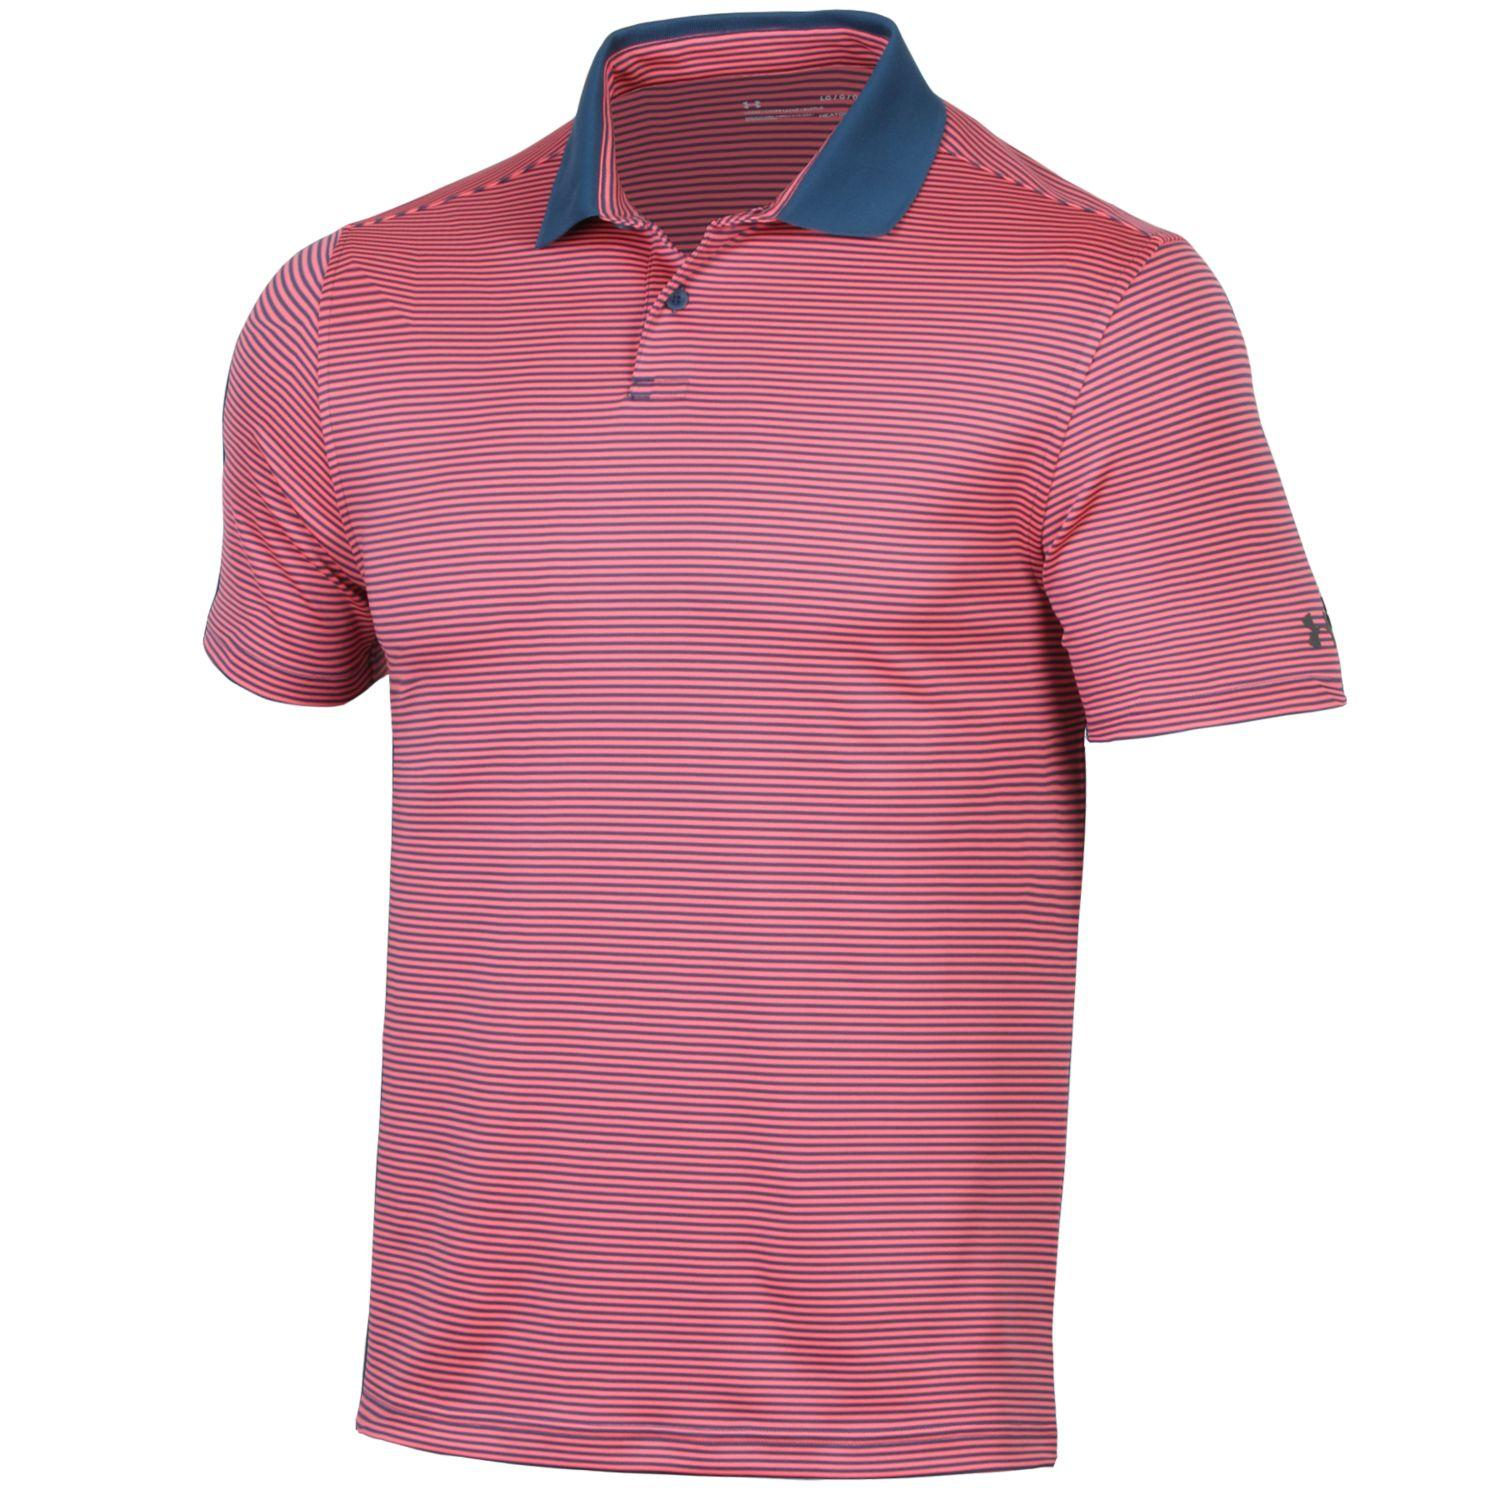 Under Armour Men's 2020 Performance Pin Stripe Polo